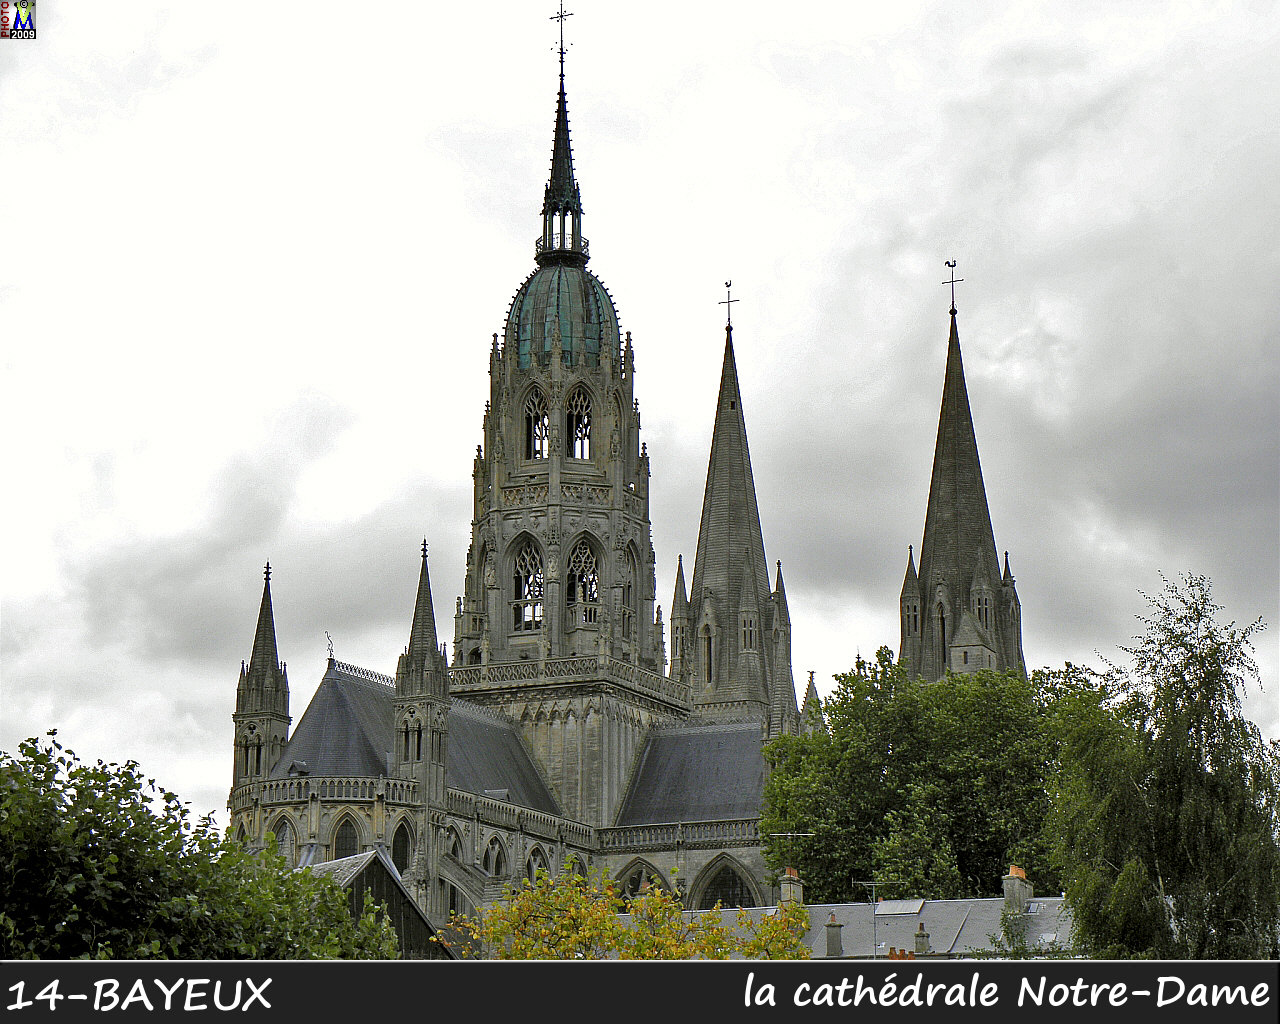 14BAYEUX_cathedrale_116.jpg